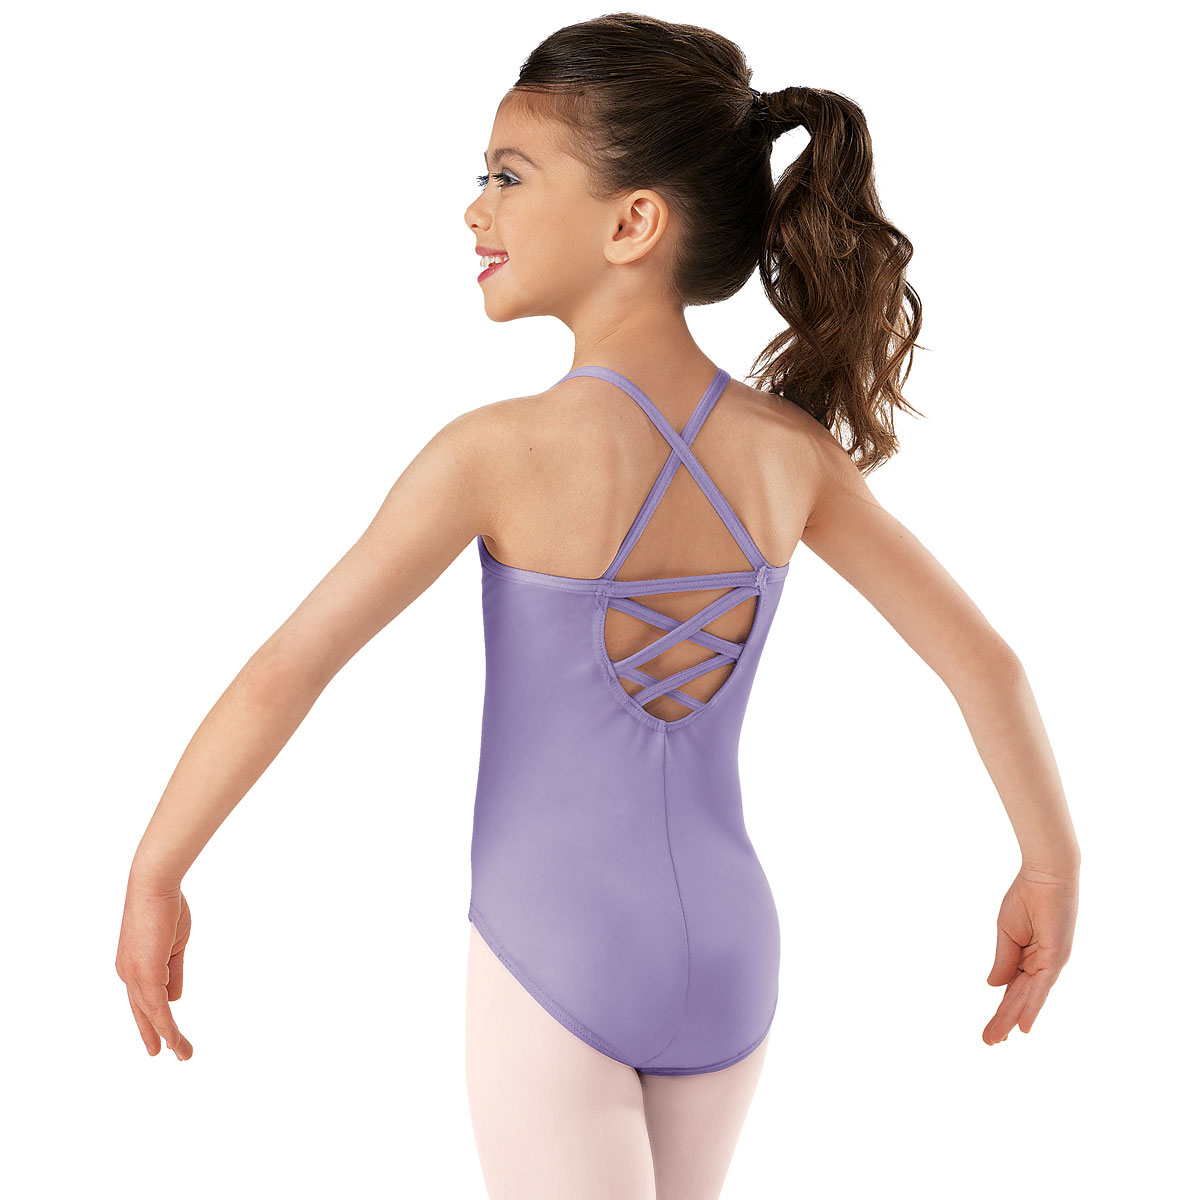 Dancewear Solutions. K likes. From contemporary to jazz and ballet to hip-hop, Dancewear Solutions keeps you looking and feeling great in the studio.